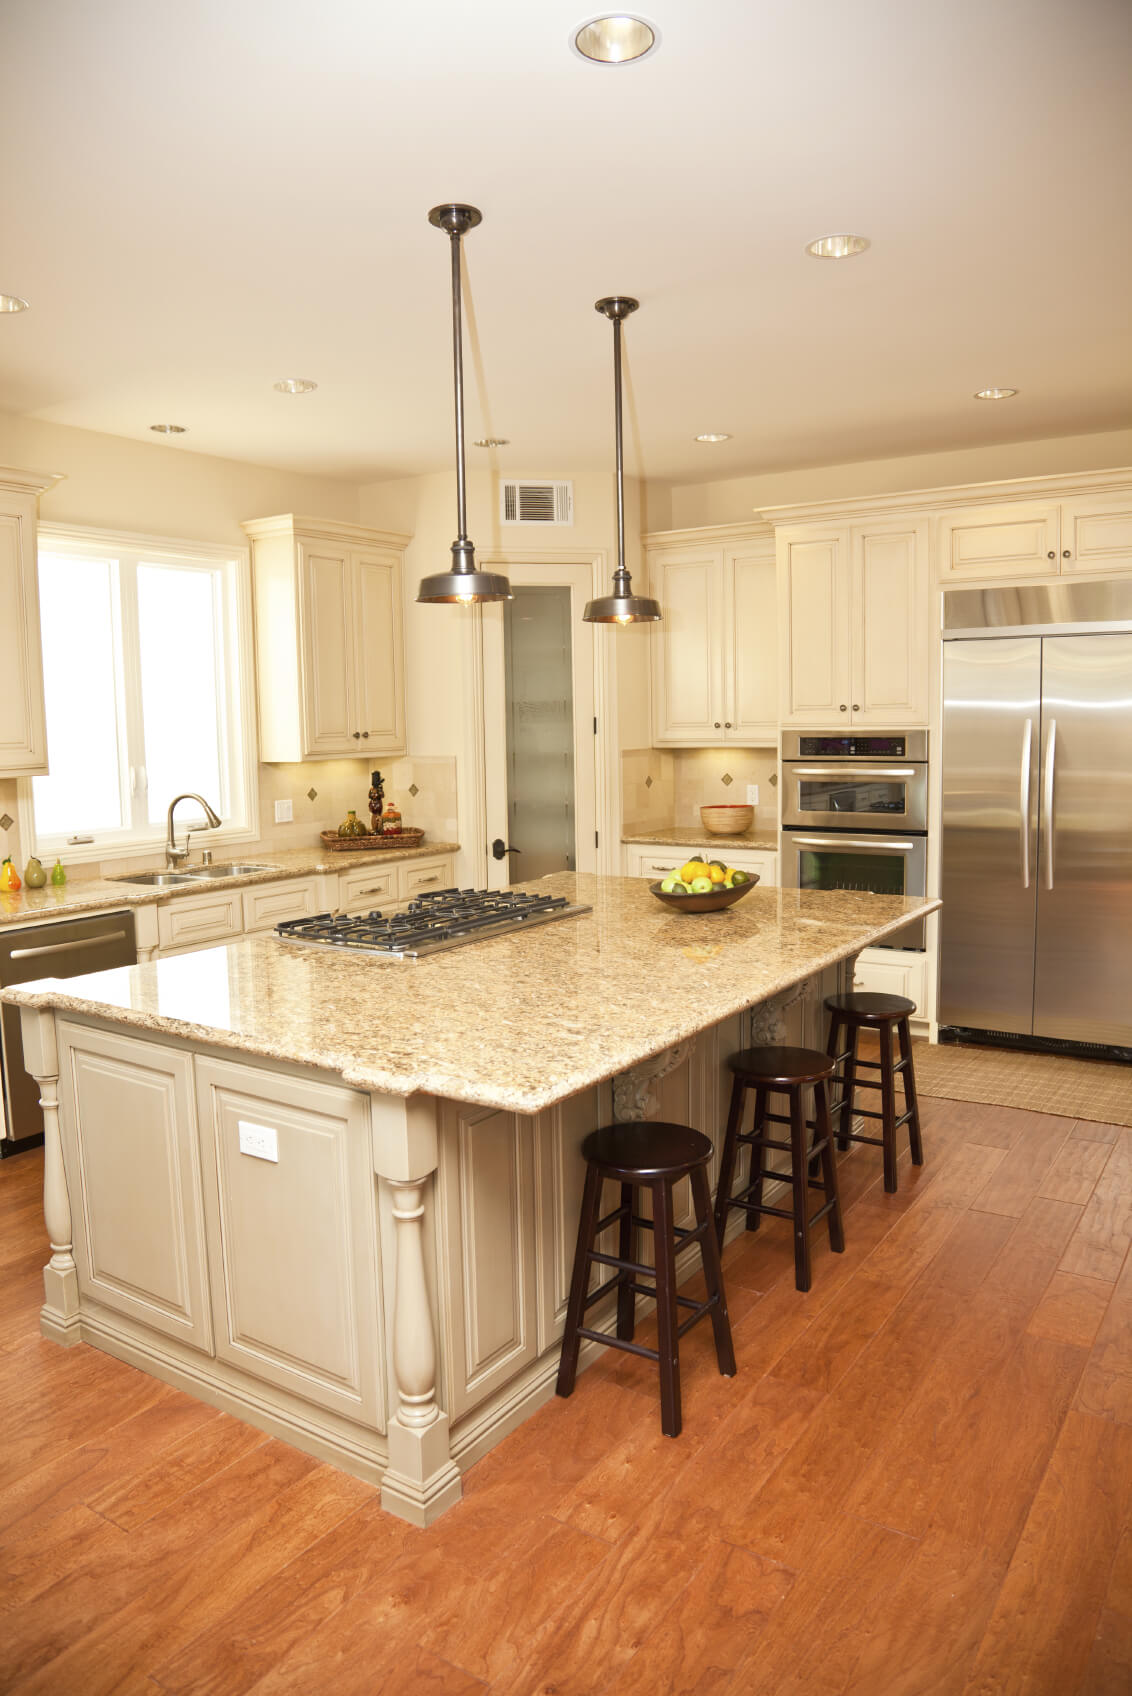 Luxurious Beige Tone Island Features Wide Overhang For Dining With Built In  Range. Kitchen Island Design Ideas Racetotop